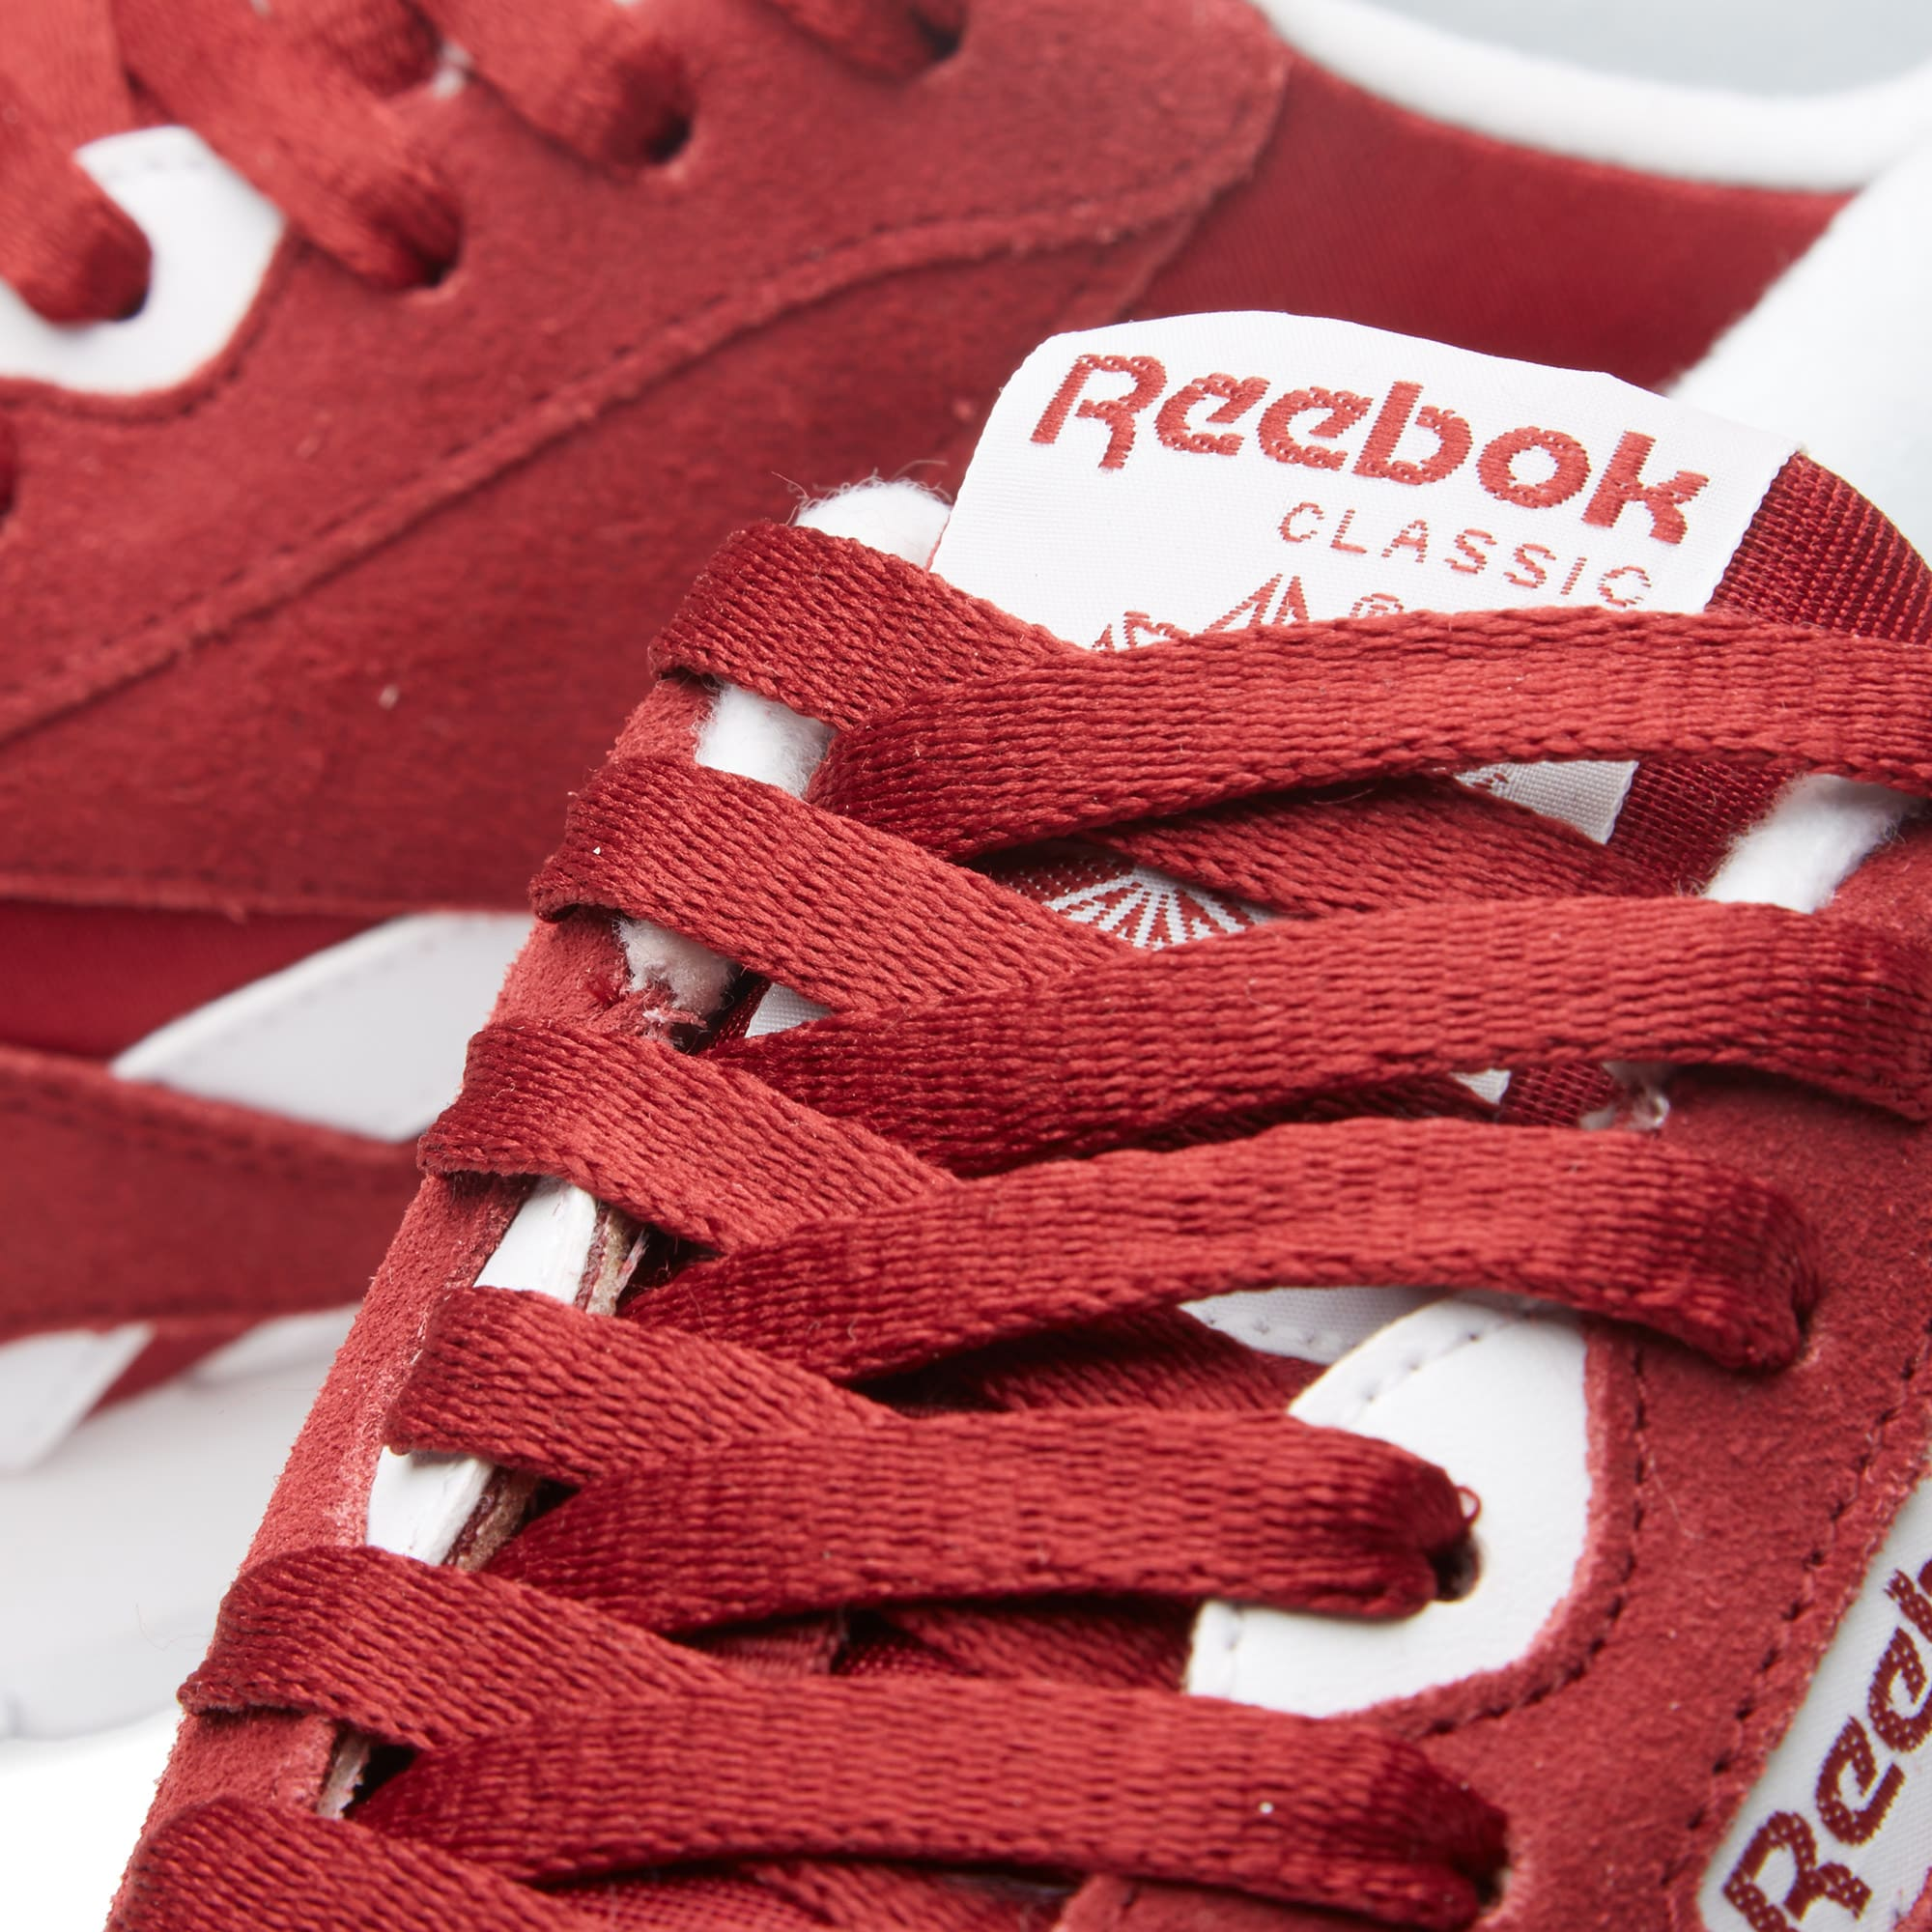 Reebok Cl Nylon Triathlon Red White